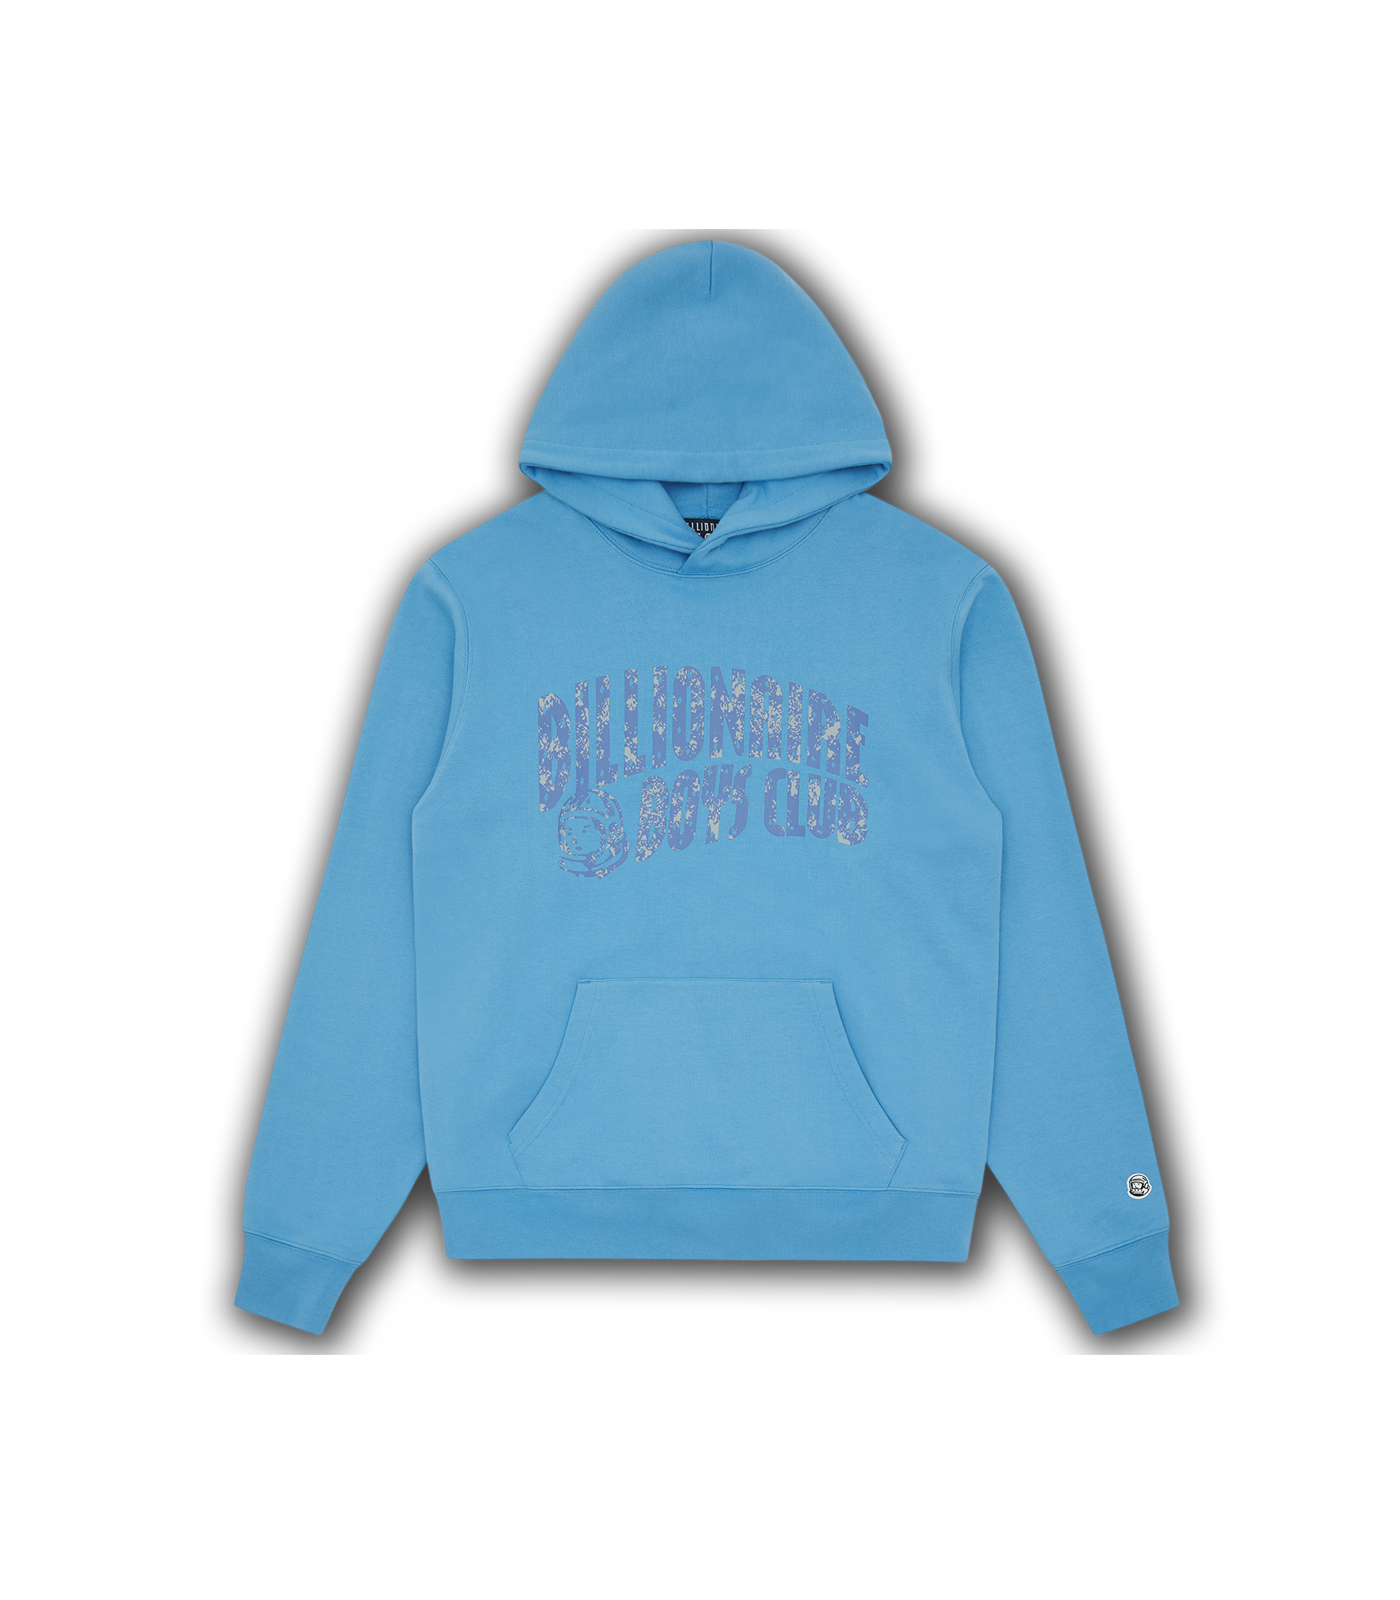 ARCH LOGO POPOVER HOOD - BLUE